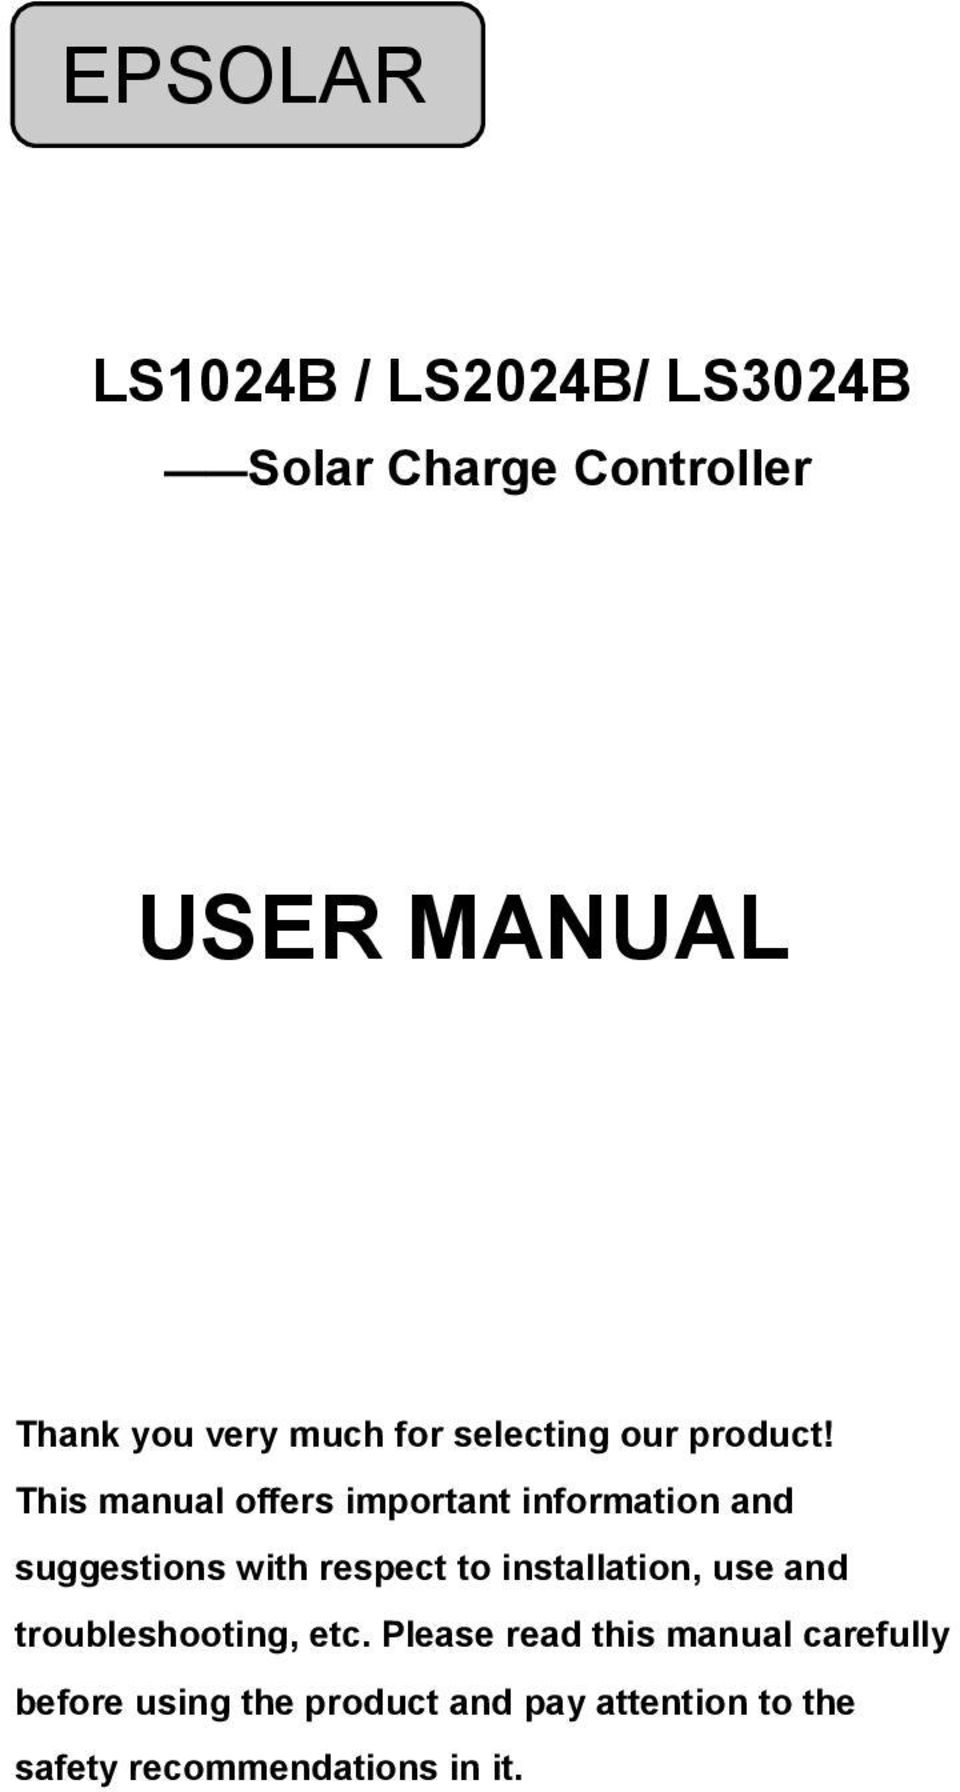 This manual offers important information and suggestions with respect to installation,